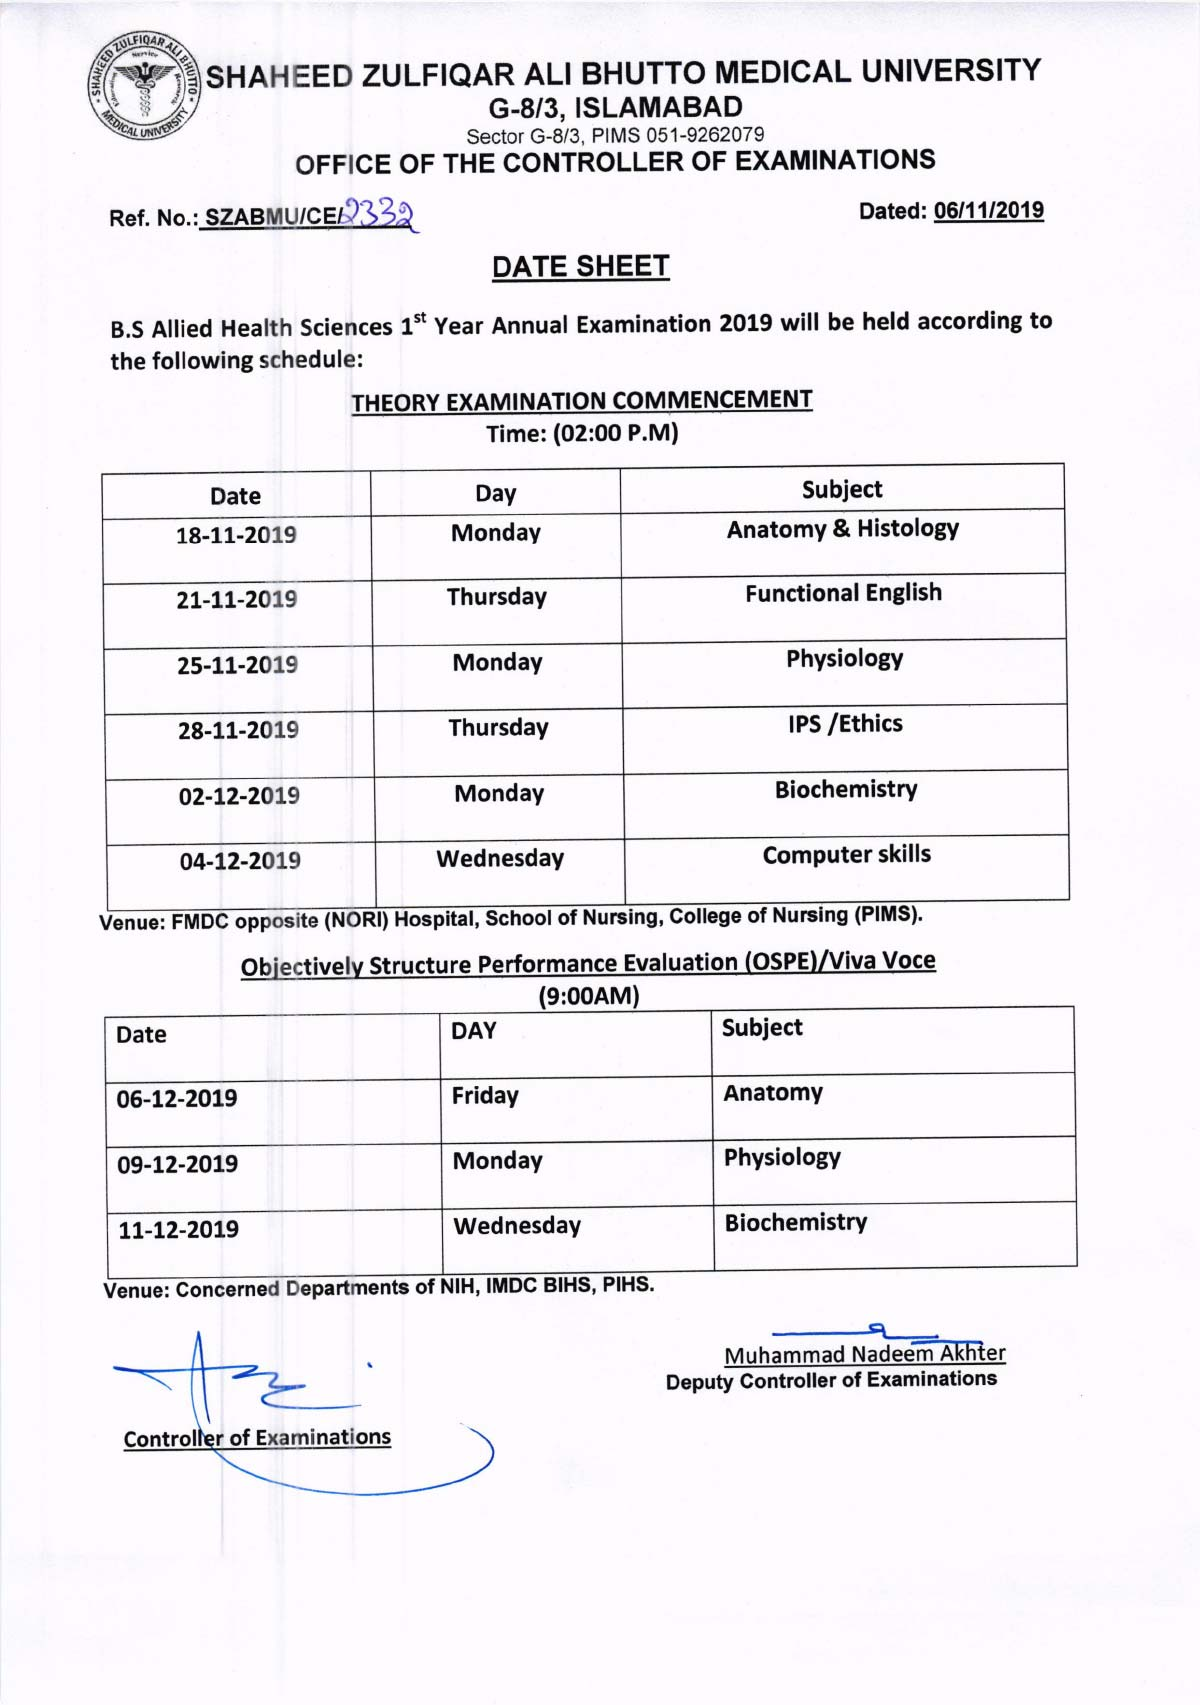 Revised Date Sheet of BS AHS 1st Year Annual Examinations 2019